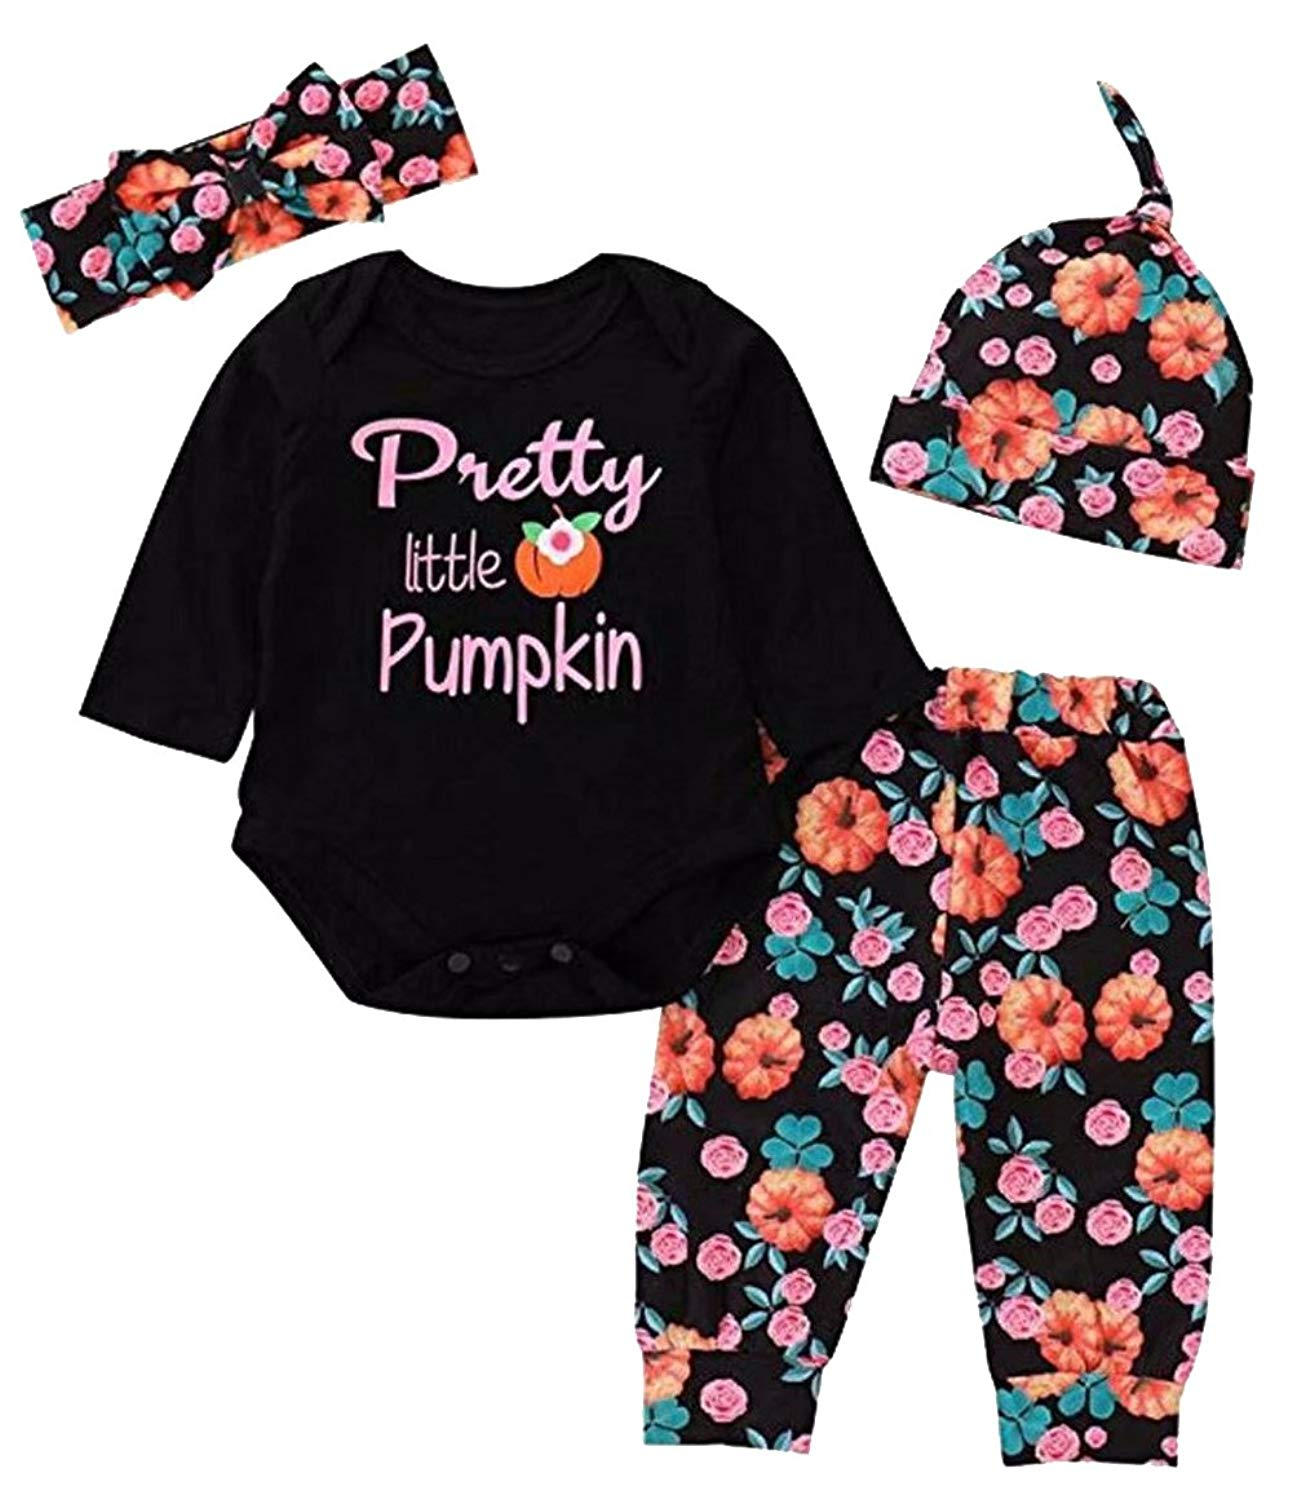 81210ec1e4eb Get Quotations · 4Pcs Infant Girl Pretty Little Pumpkin Romper Floral Pants  Halloween Outfits Set